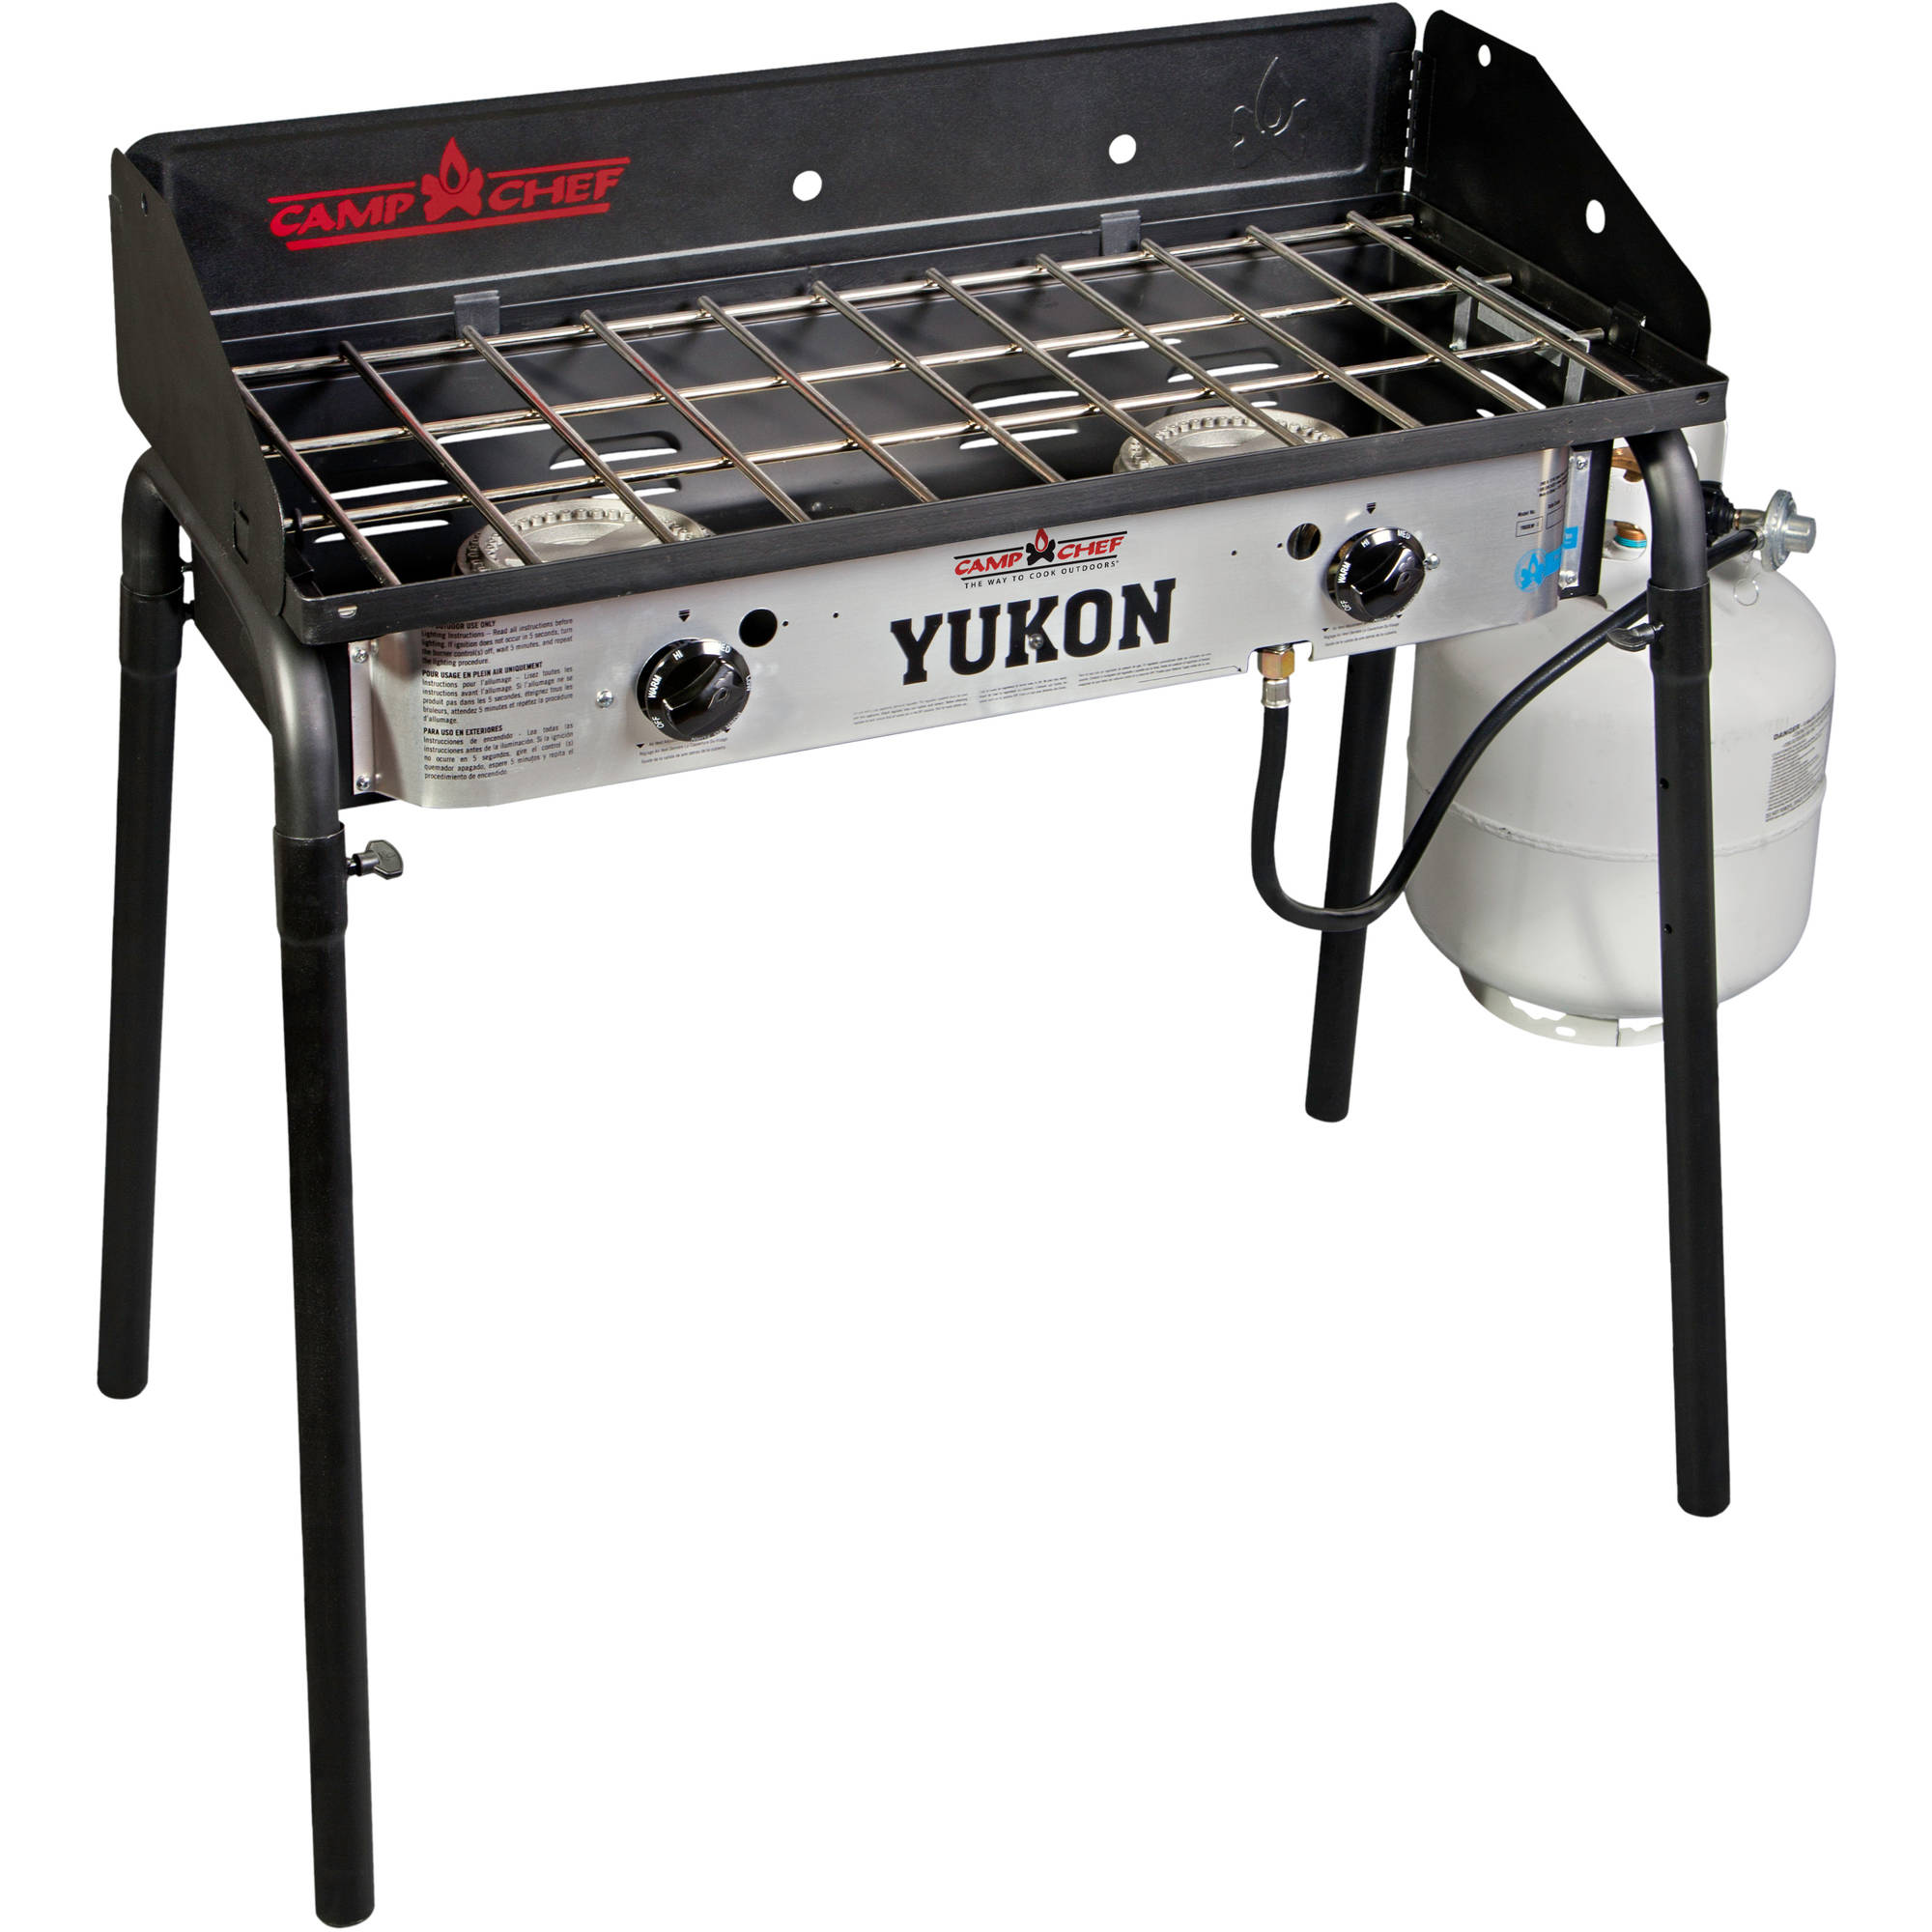 Camp Chef YK60LW Yukon Two Burner Range Camp Stove